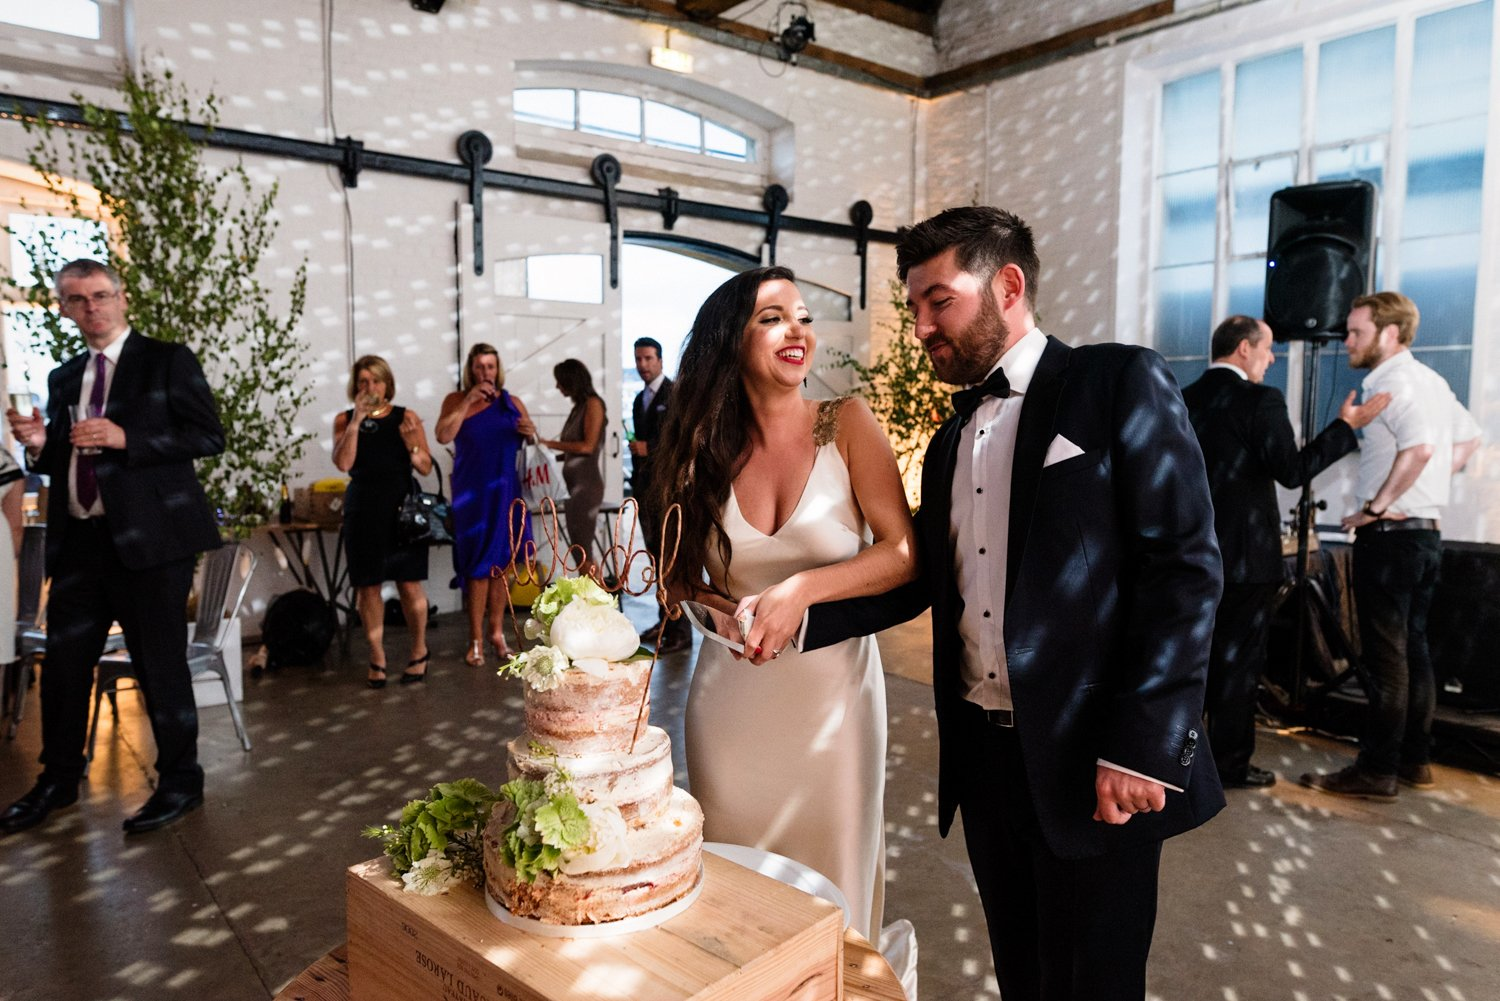 Naked cake glamorous wedding London